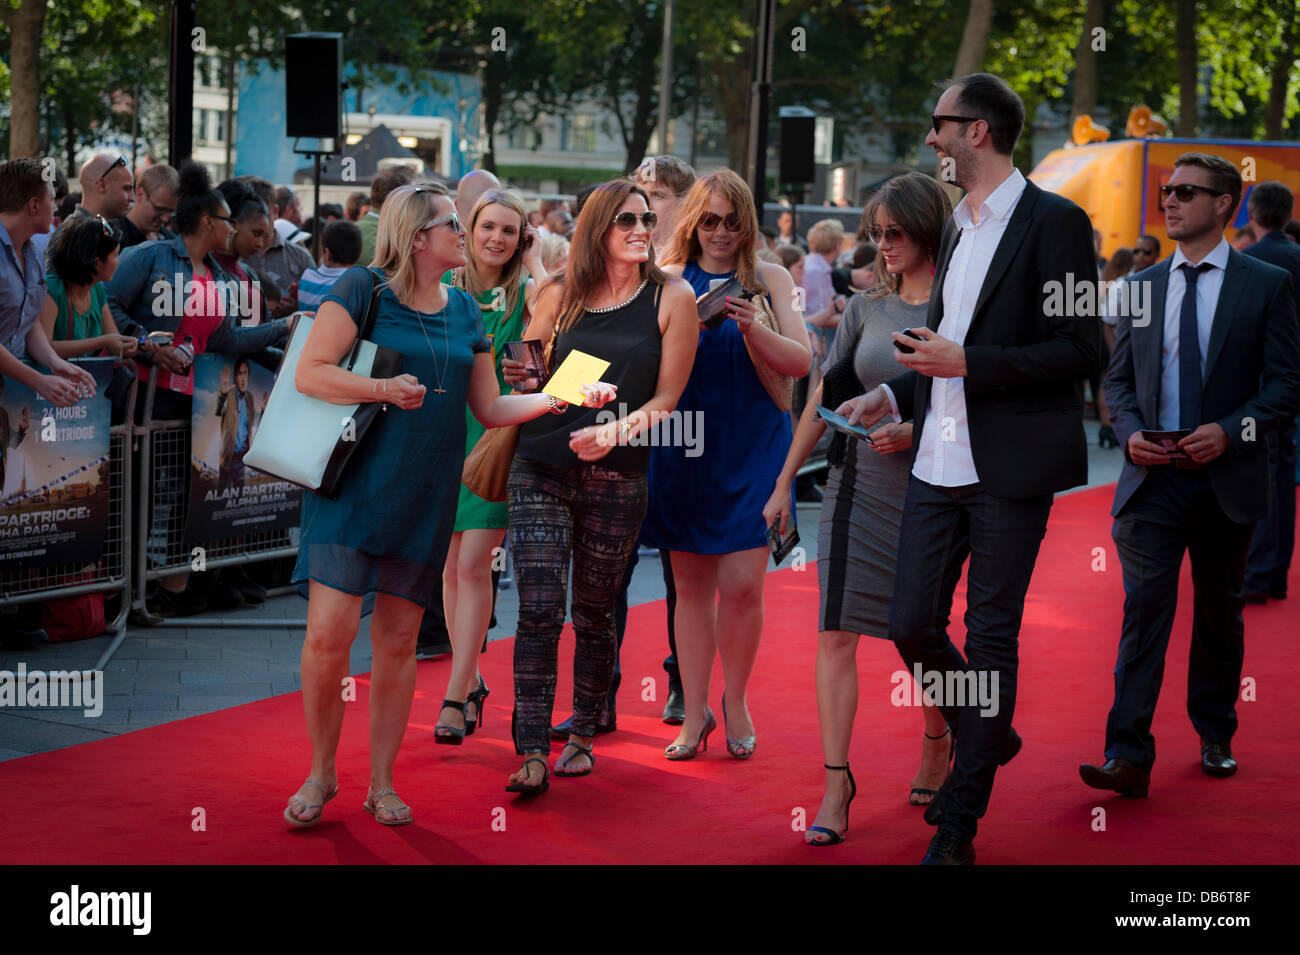 Leicester Square, London, UK. 24th July, 2013. Alan Partridge, aka Steve Coogan, Attends Westend Premier of his - Stock Image